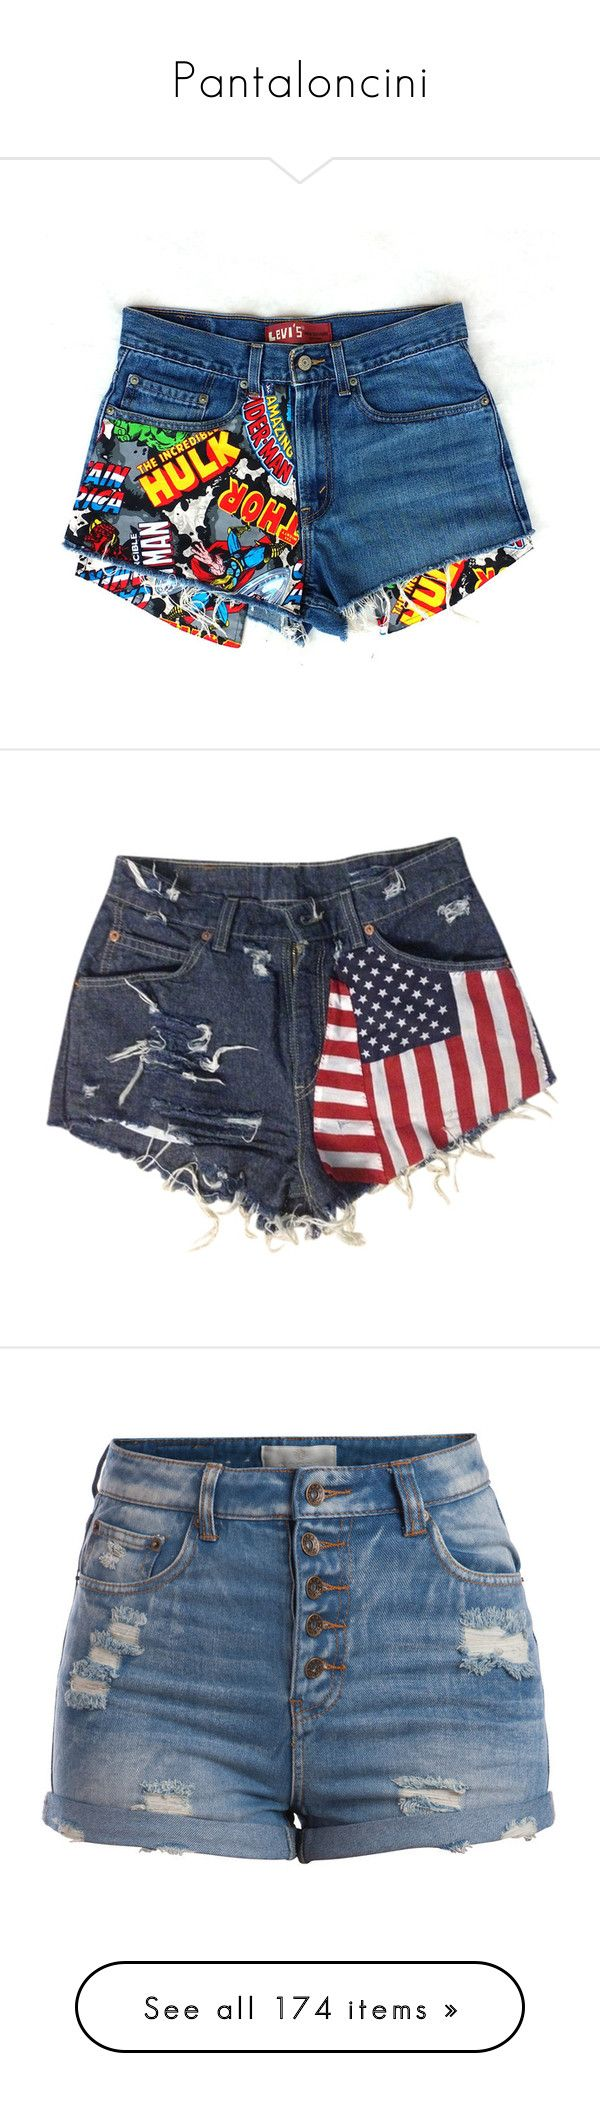 """""""Pantaloncini"""" by josnielcarilvolo ❤ liked on Polyvore featuring shorts, bottoms, pants, cut off jean shorts, high-waisted shorts, high waisted denim shorts, jean shorts, cut off shorts, cutoff shorts and short shorts"""